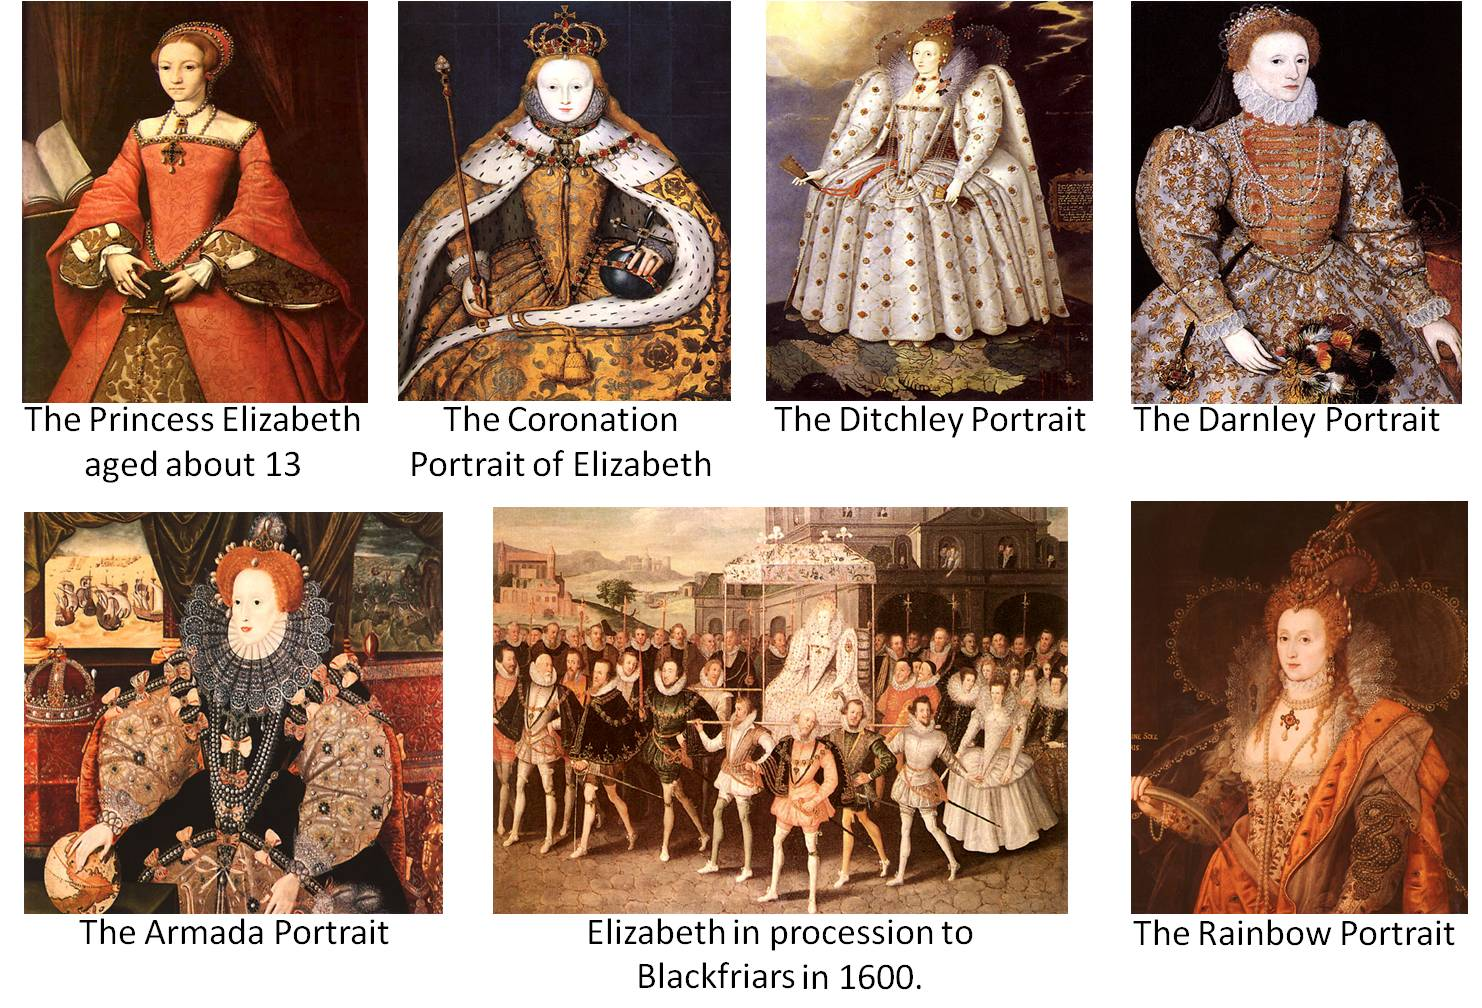 These portraits can be found at http://tudorhistory.org/elizabeth/gallery.html